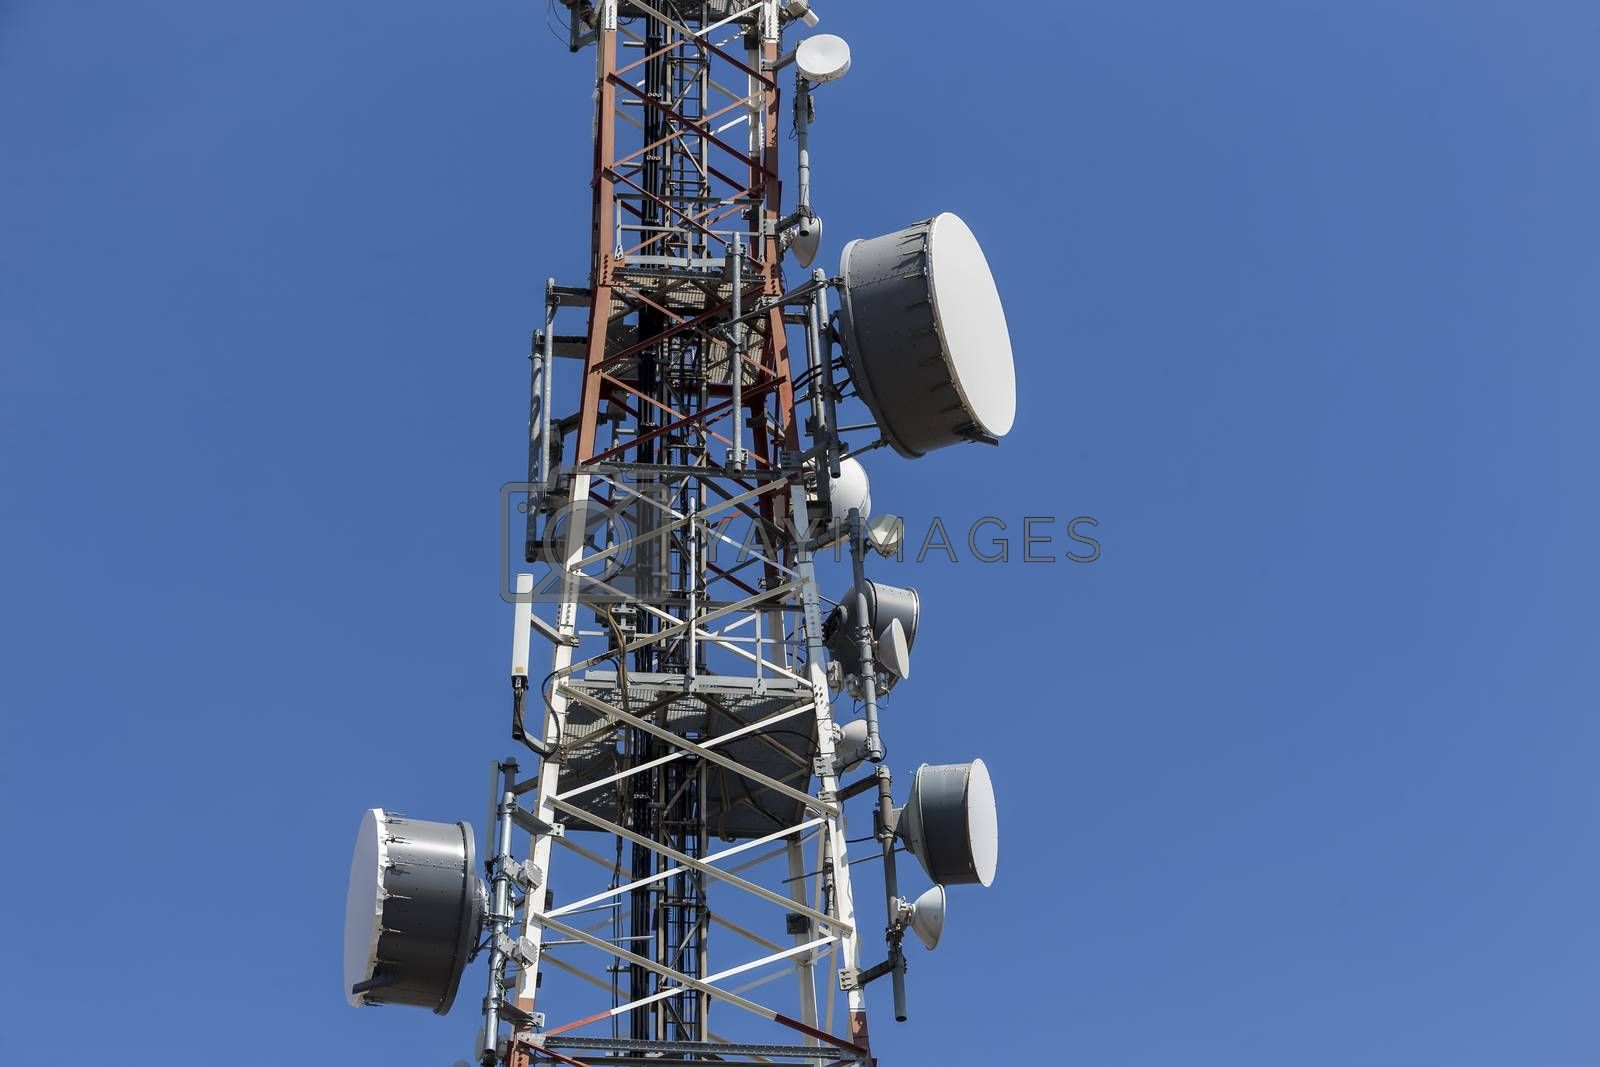 communications tower with antennas against blue sky